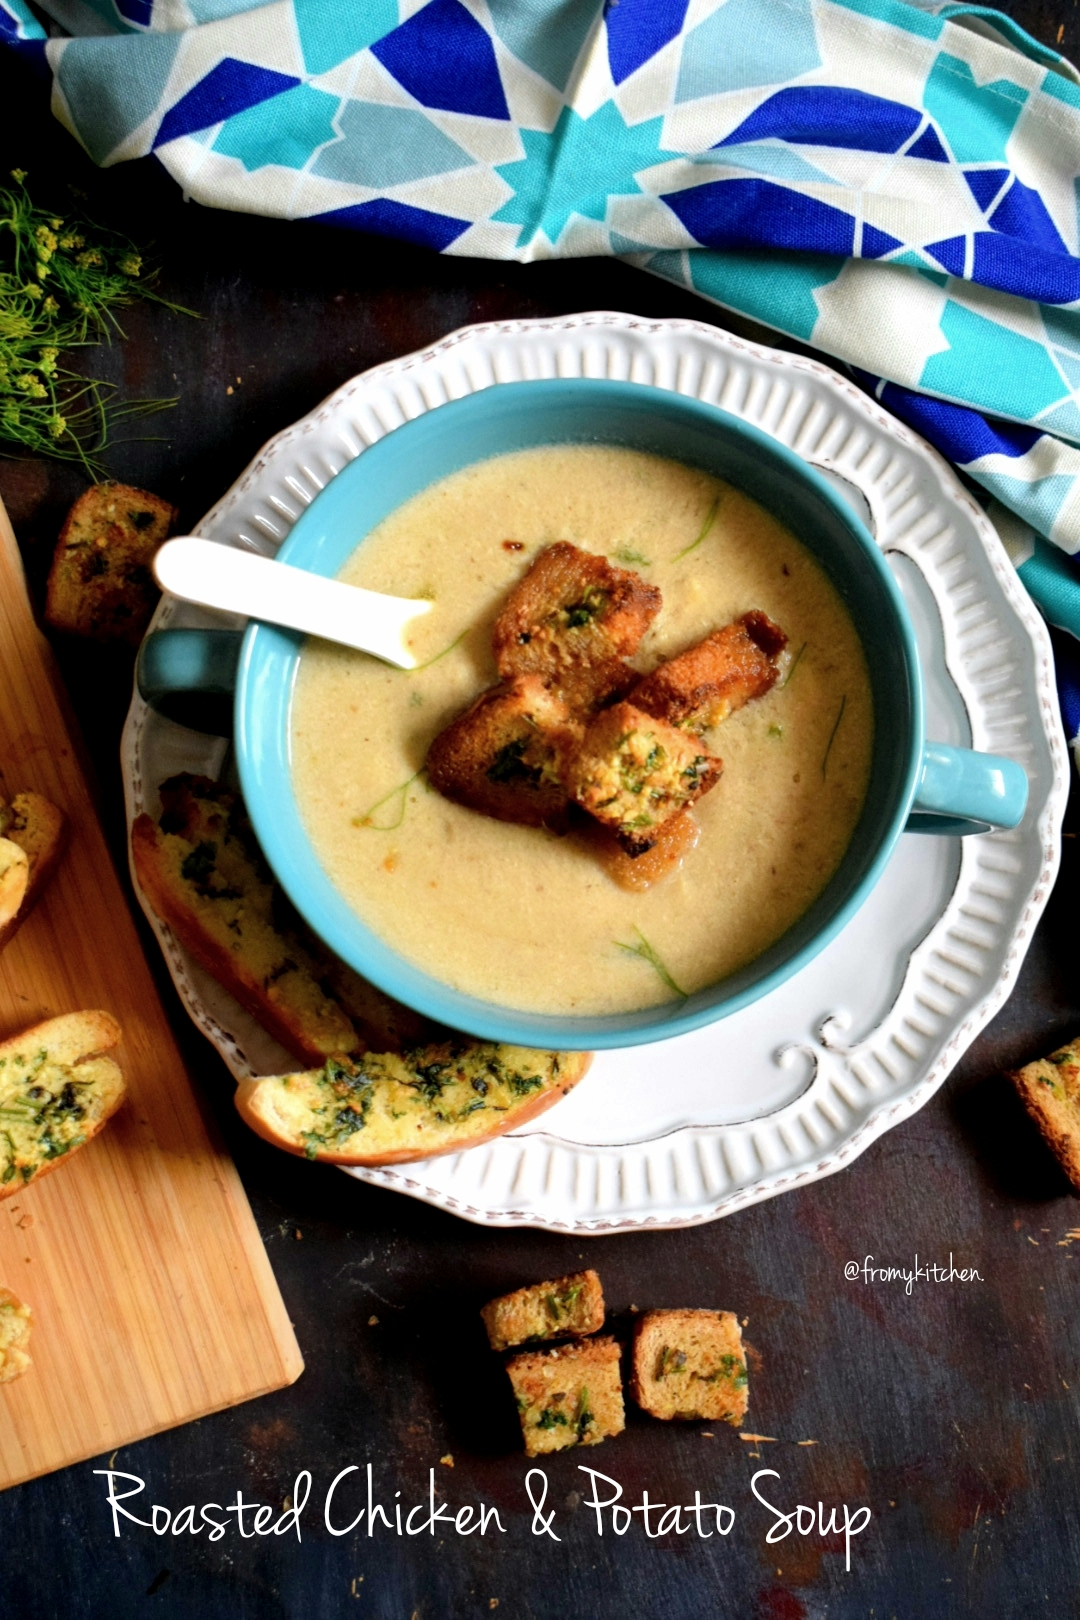 Roasted Chicken & Potato Soup